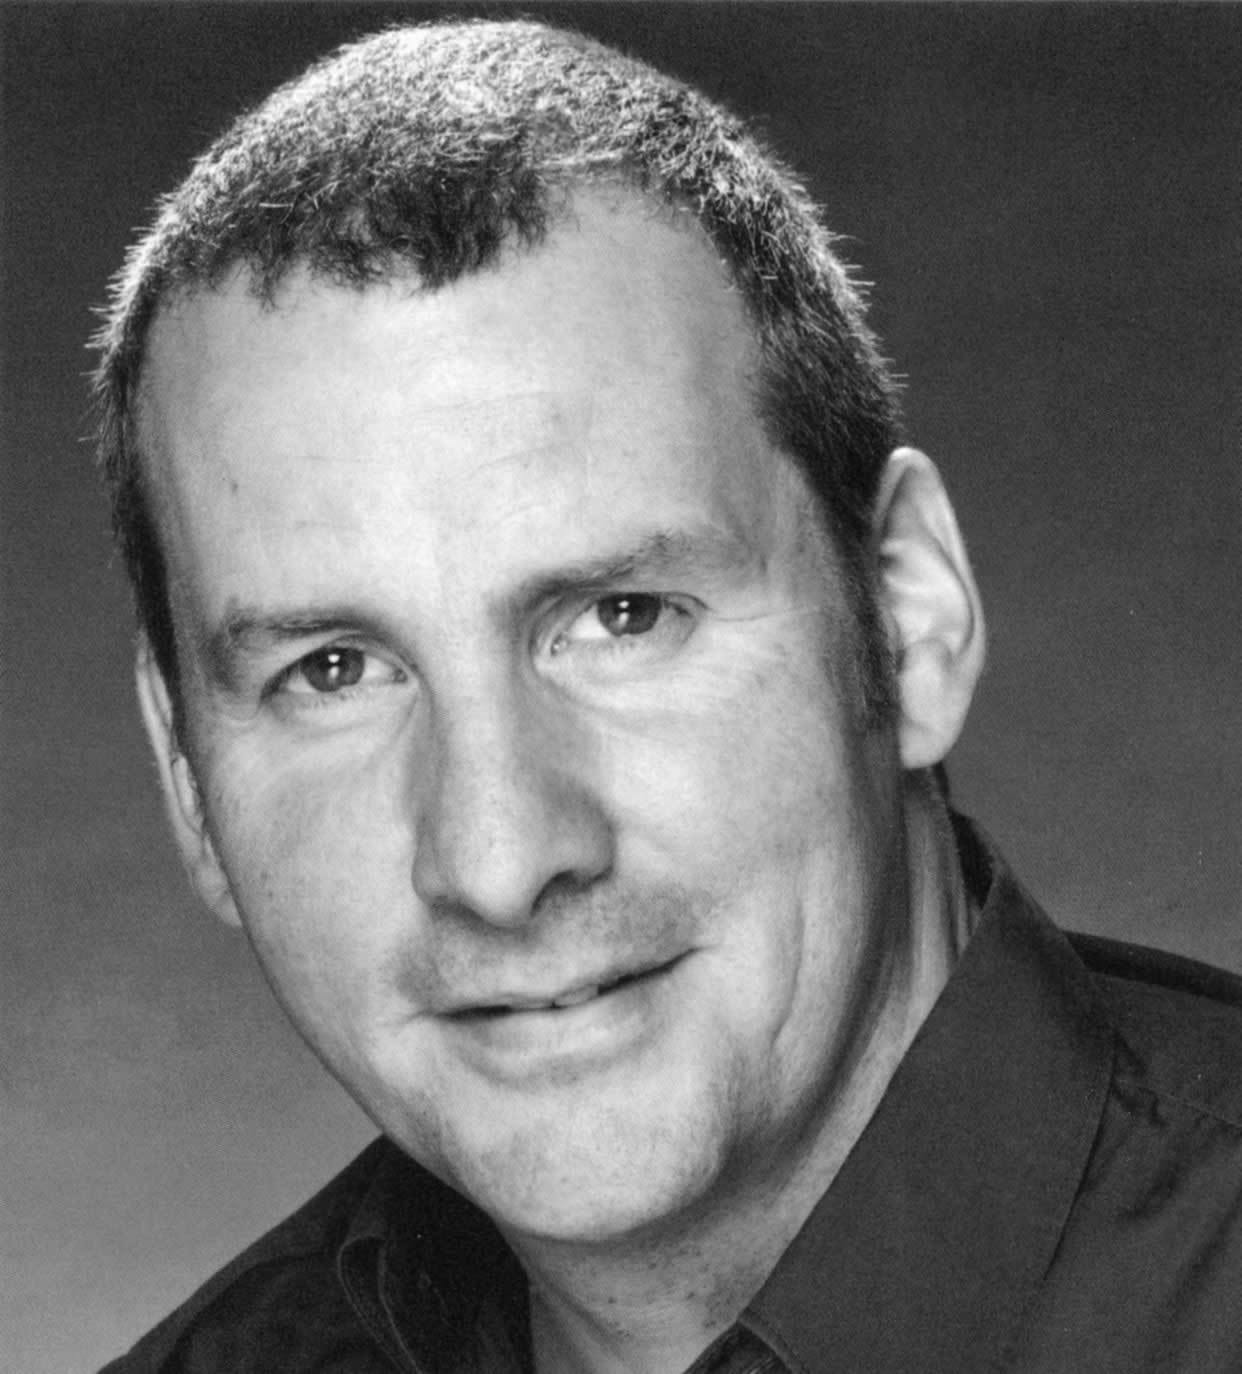 Chris Barrie (born 1960)